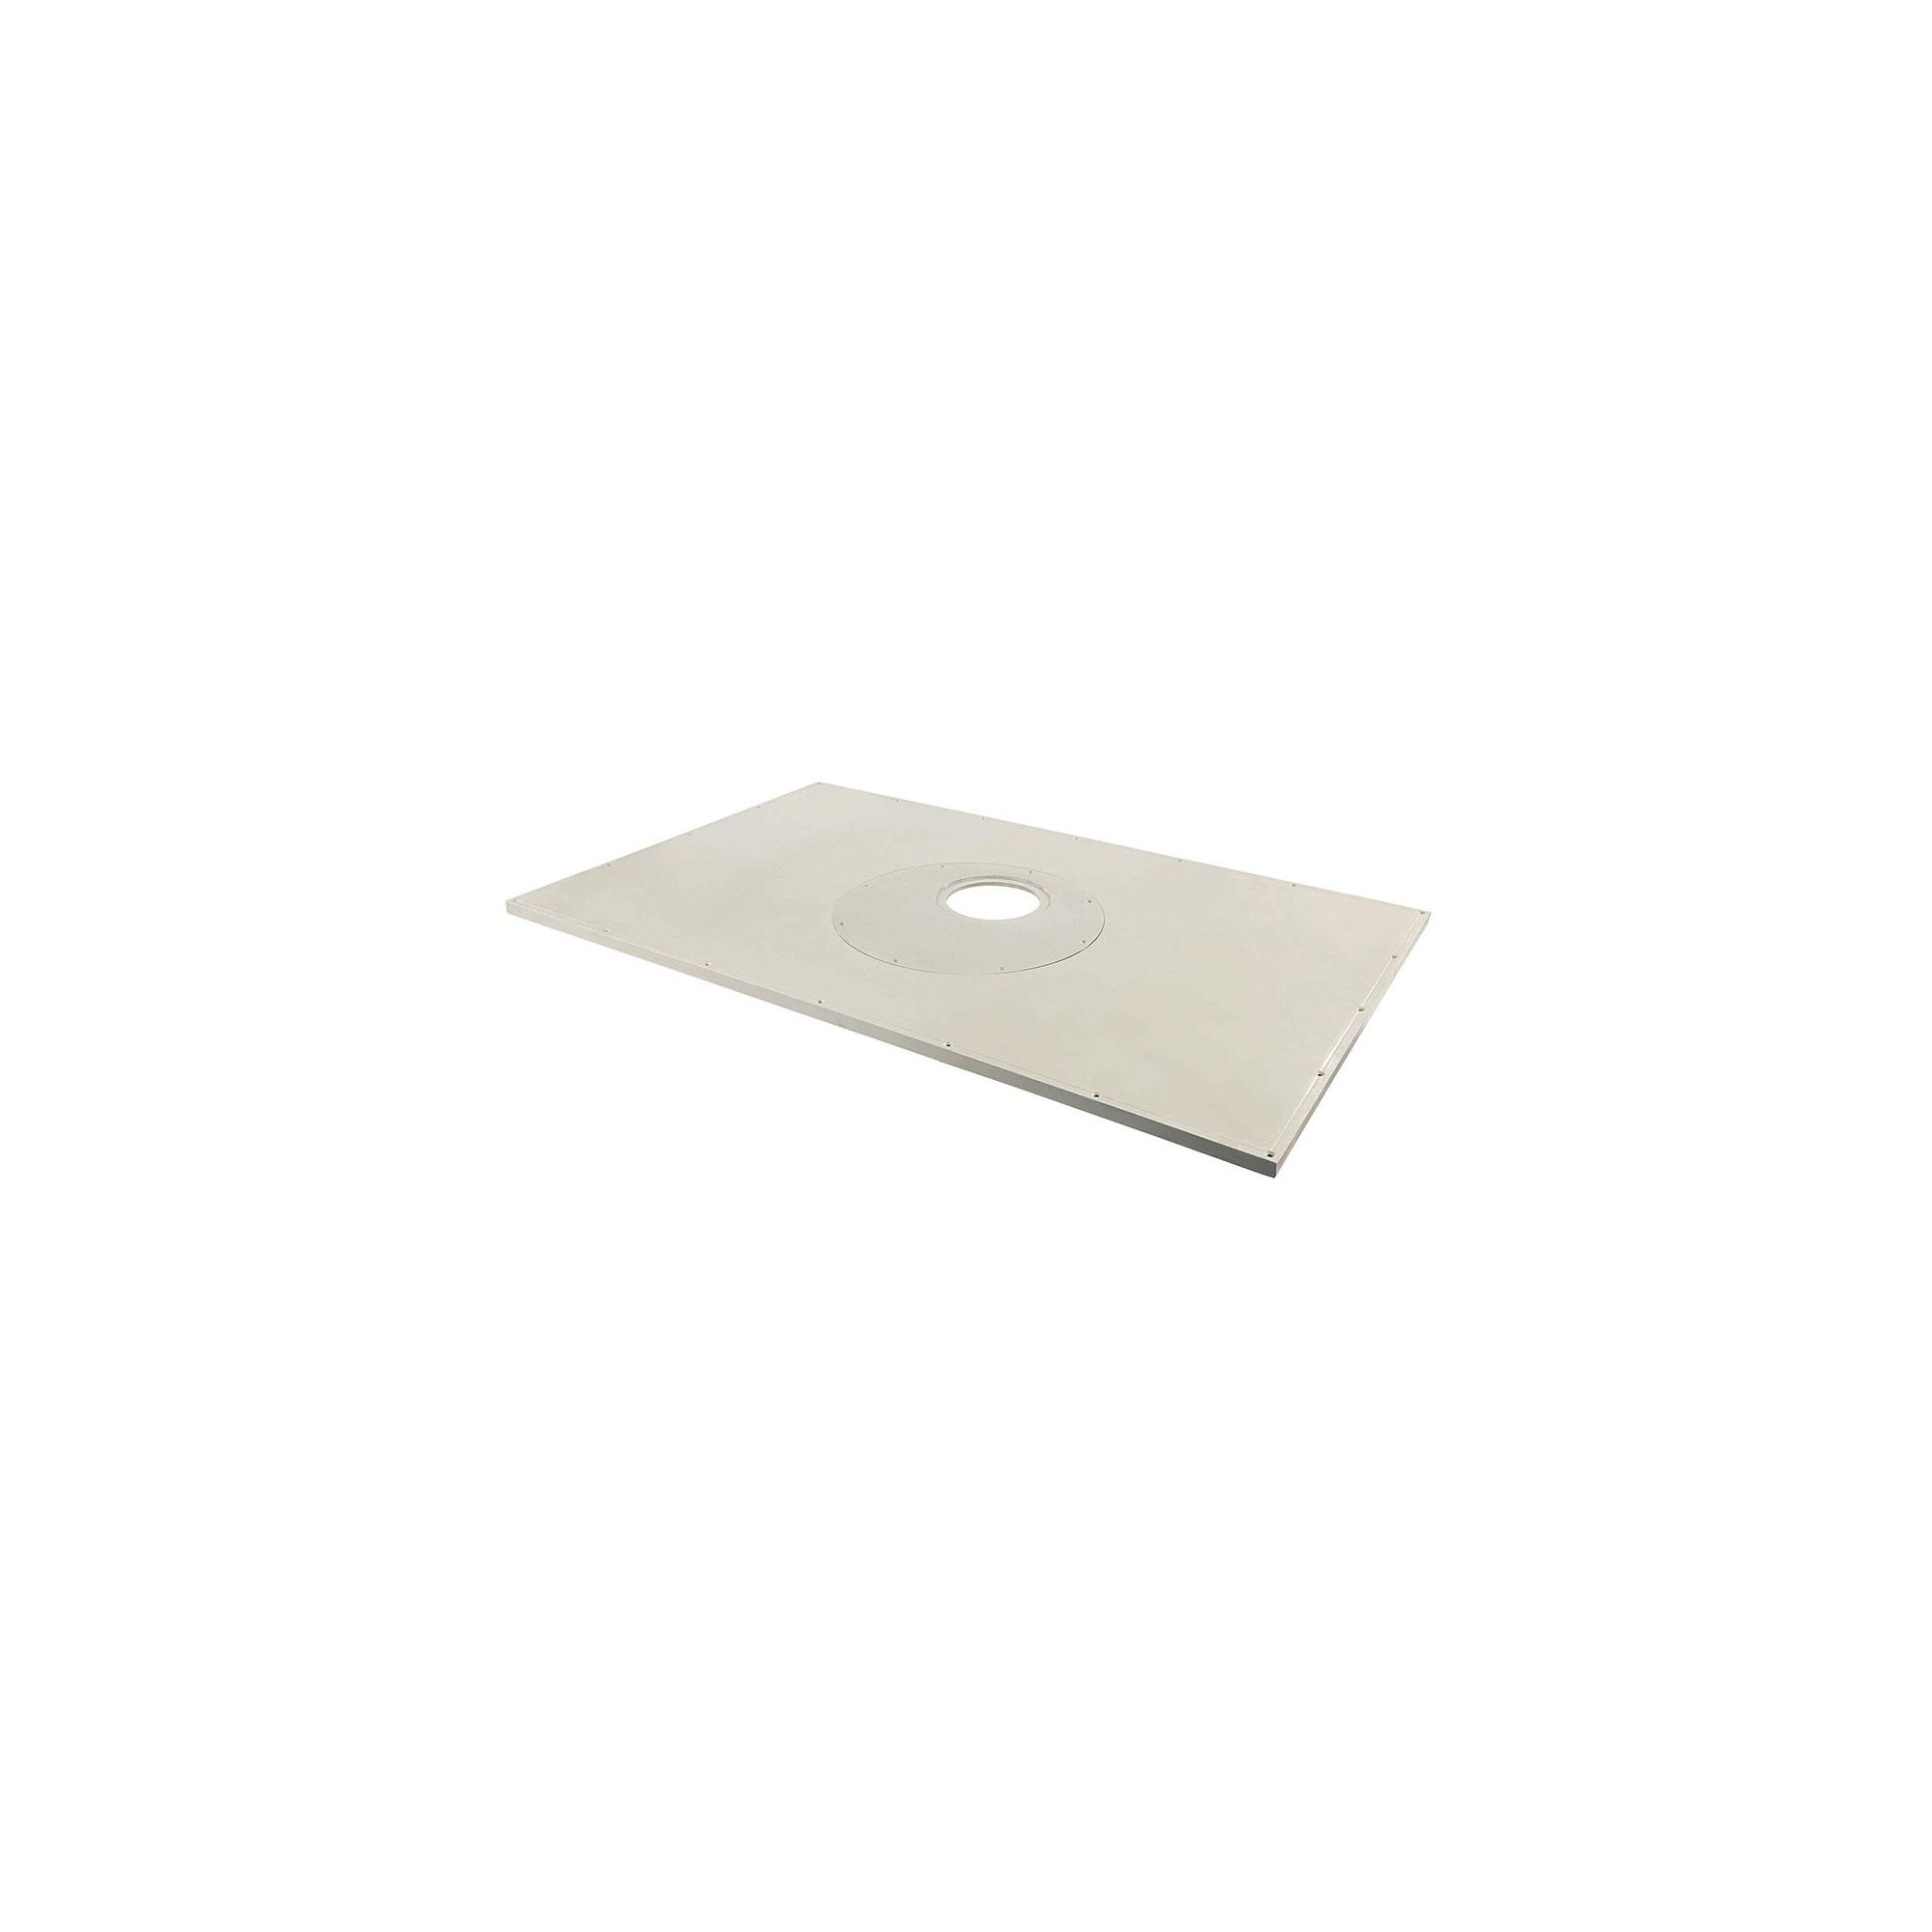 Impey Level-Dec Advance Wet Room Floor Former 1650mm x 750mm at Tesco Direct